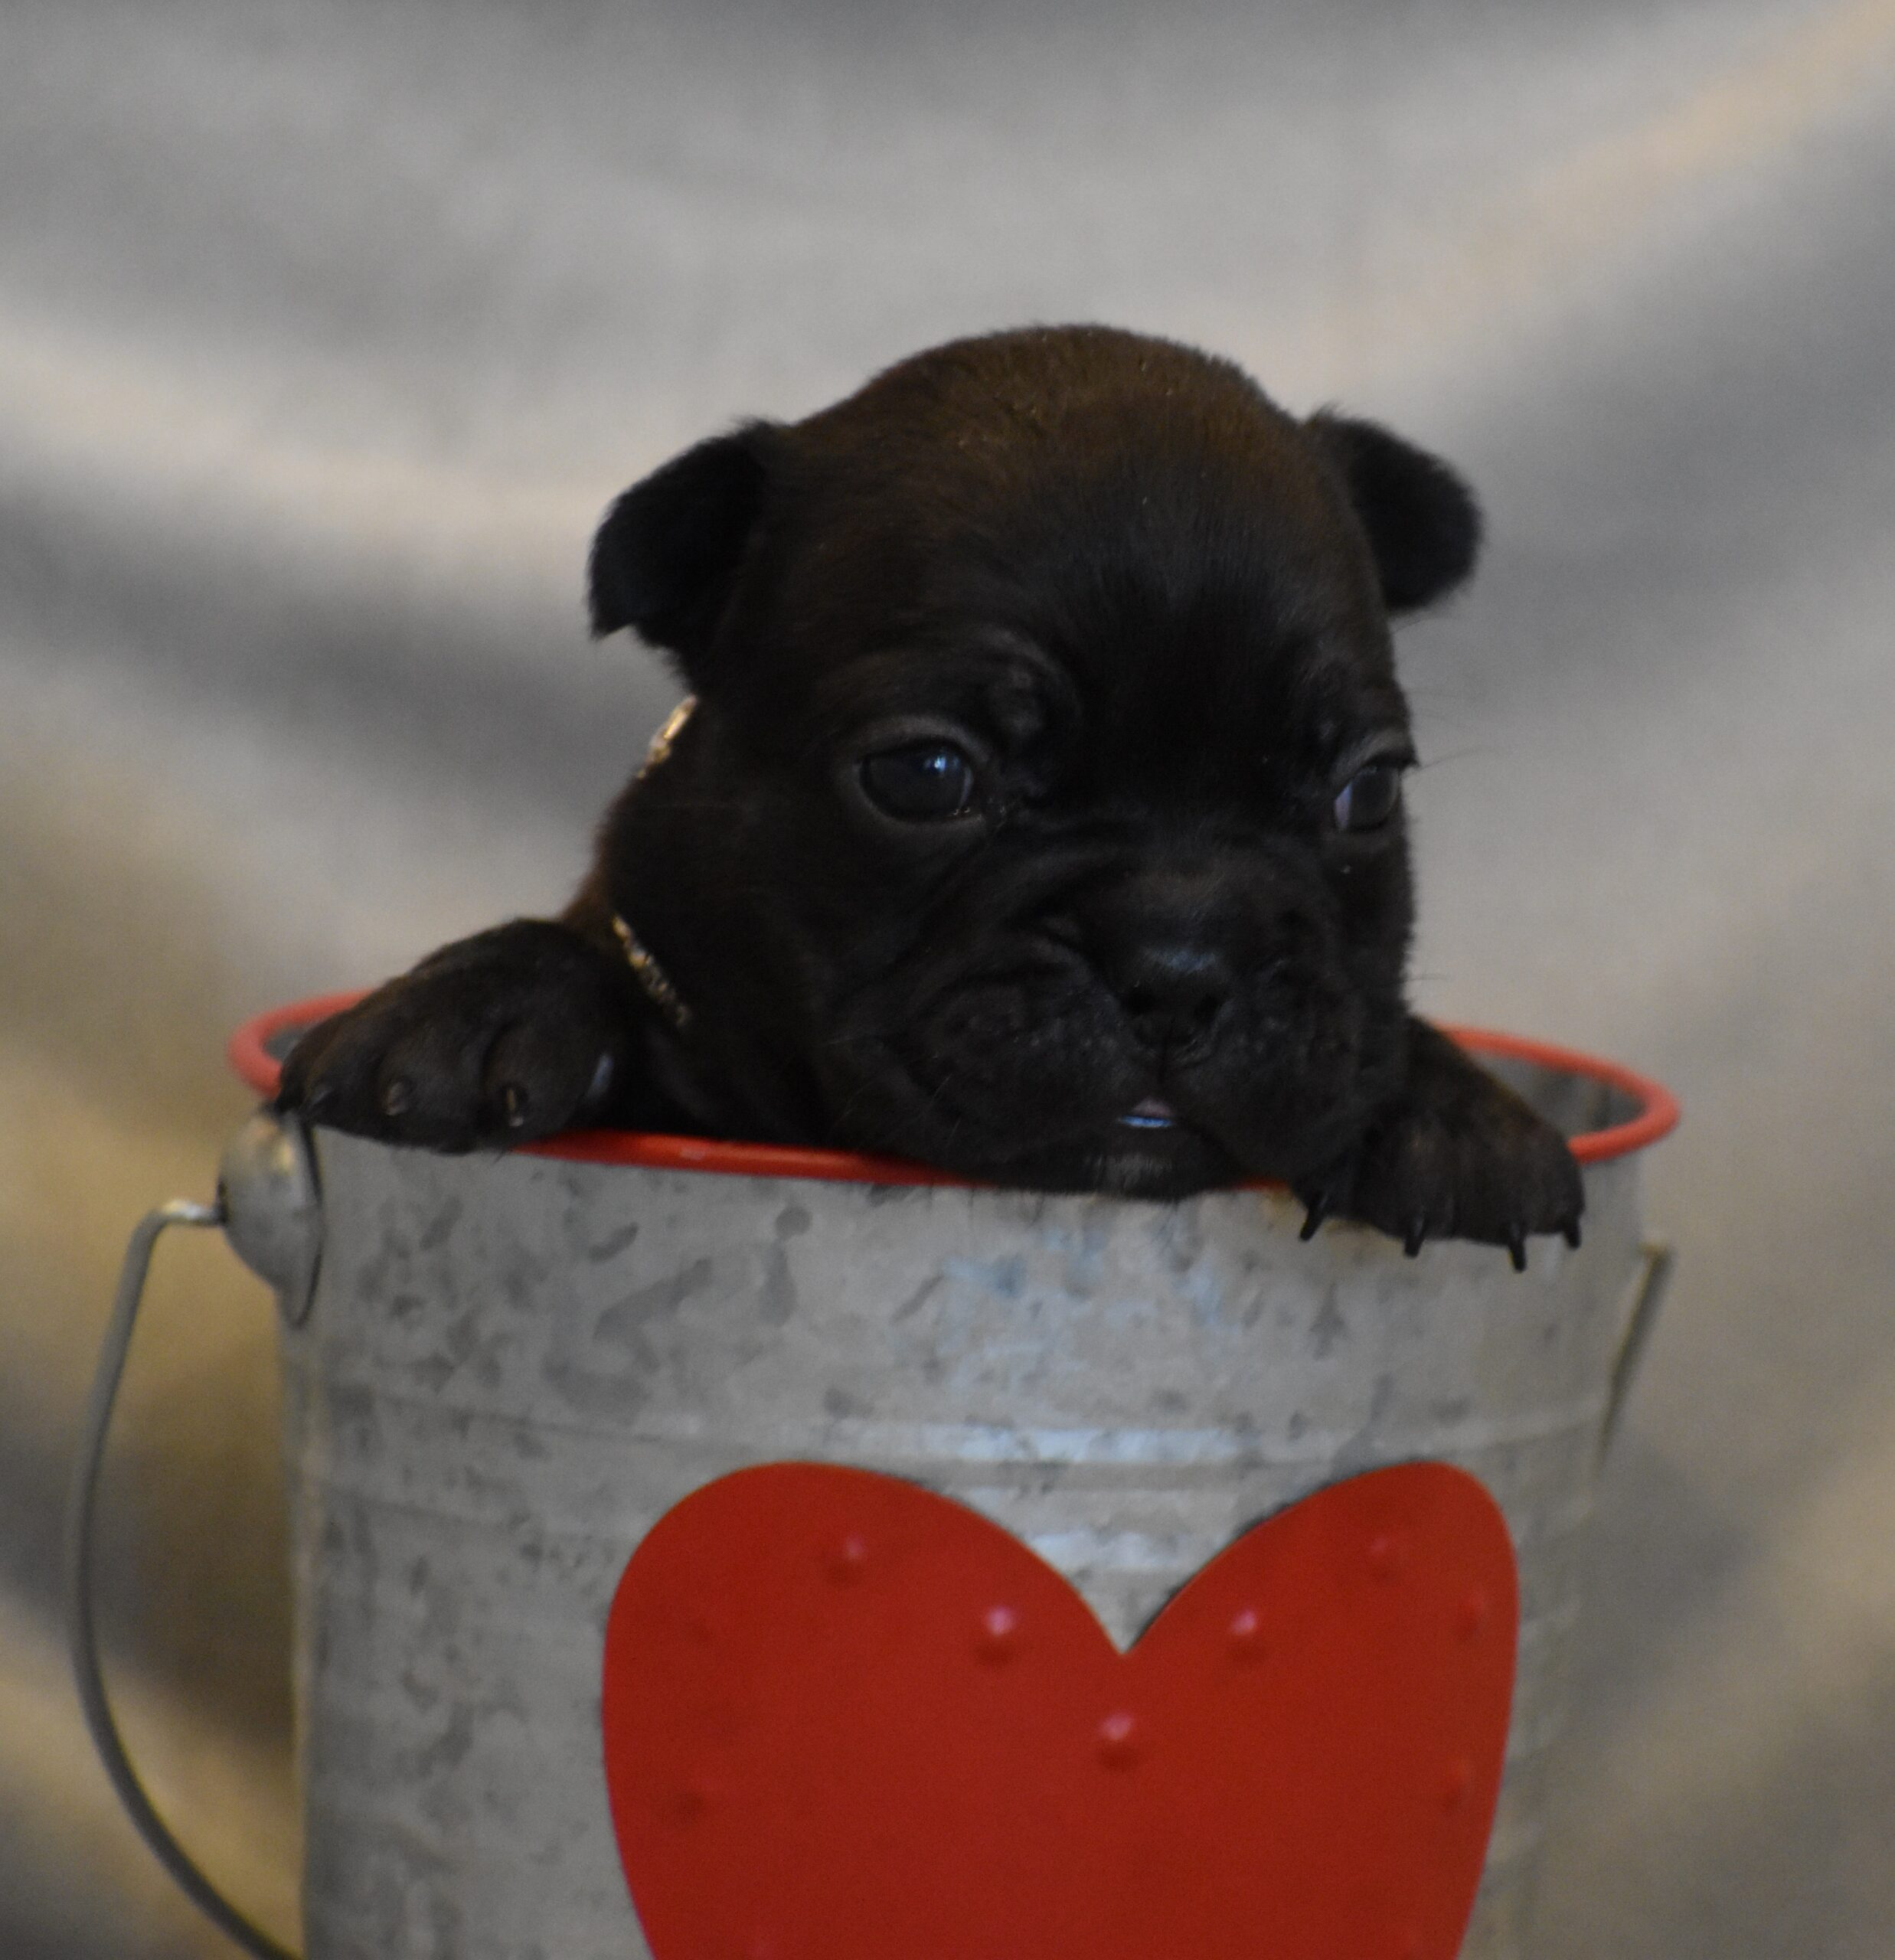 French Bulldog in a Cup